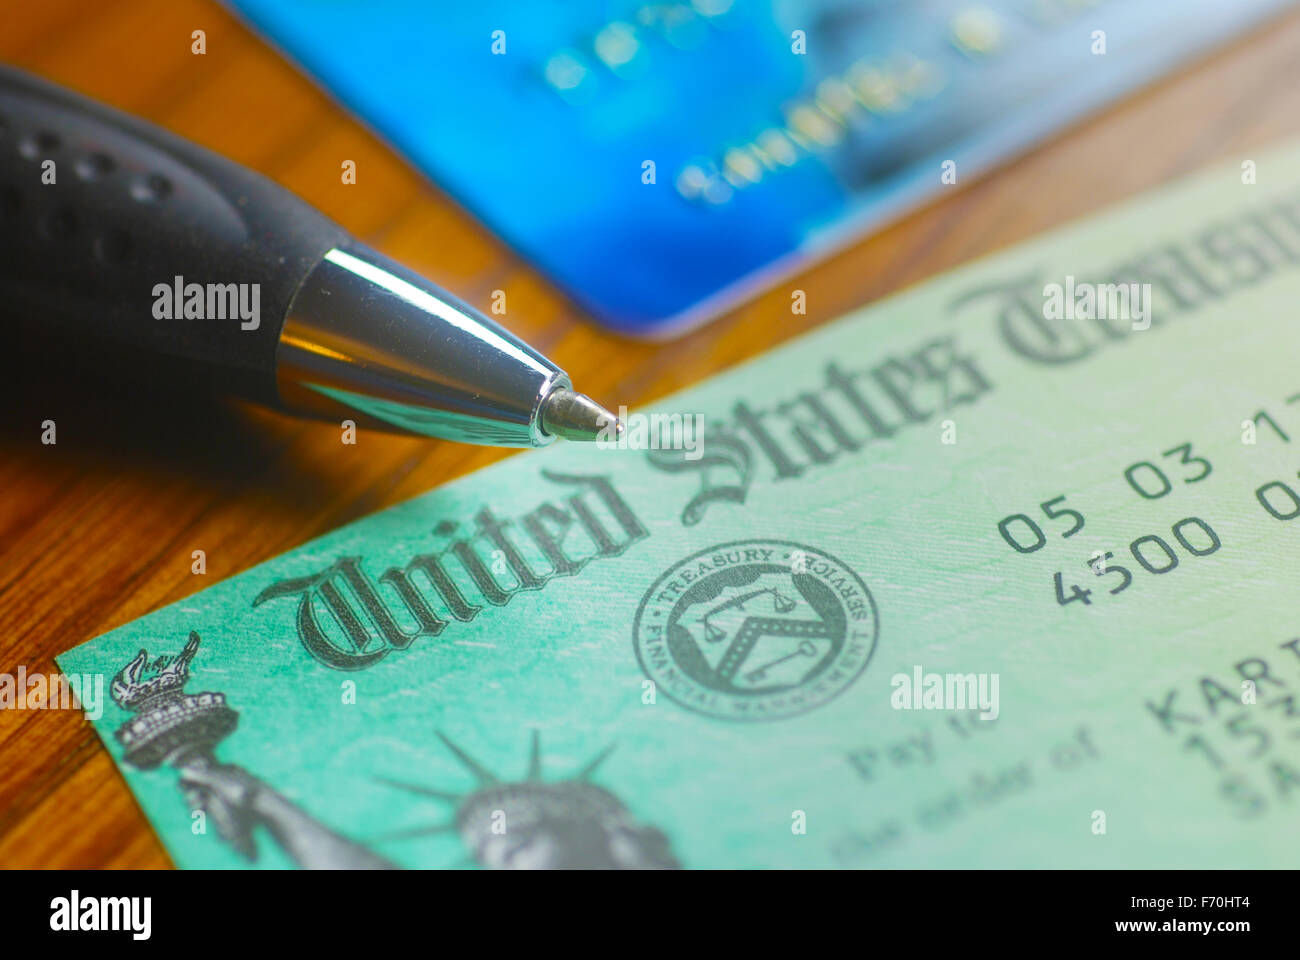 Paper check from the United States Treasury - Stock Image